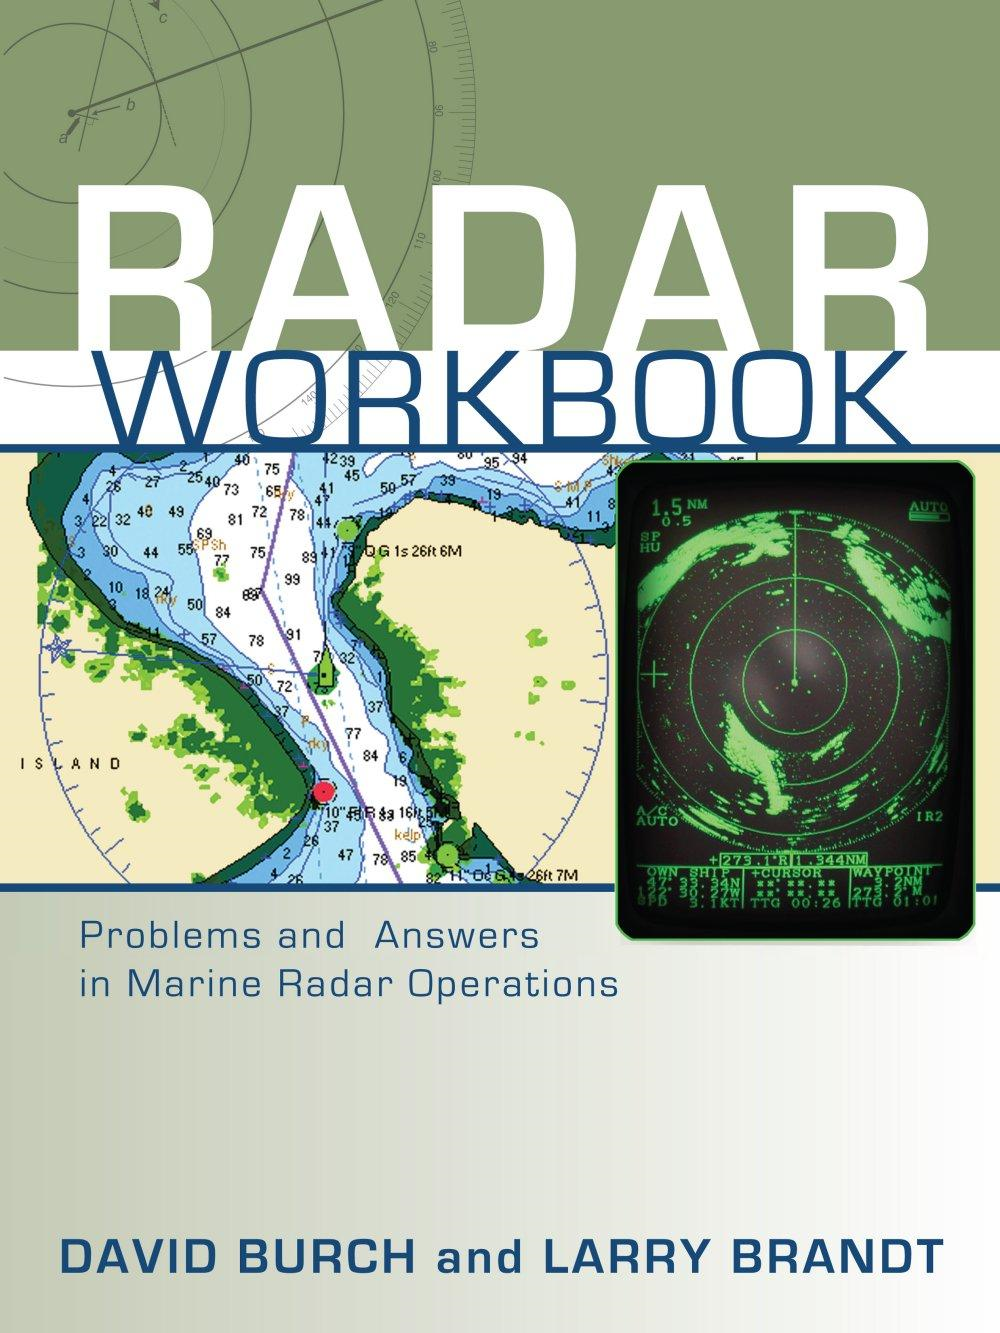 Radar Workbook - Problems and Answers in Marine Radar Operations